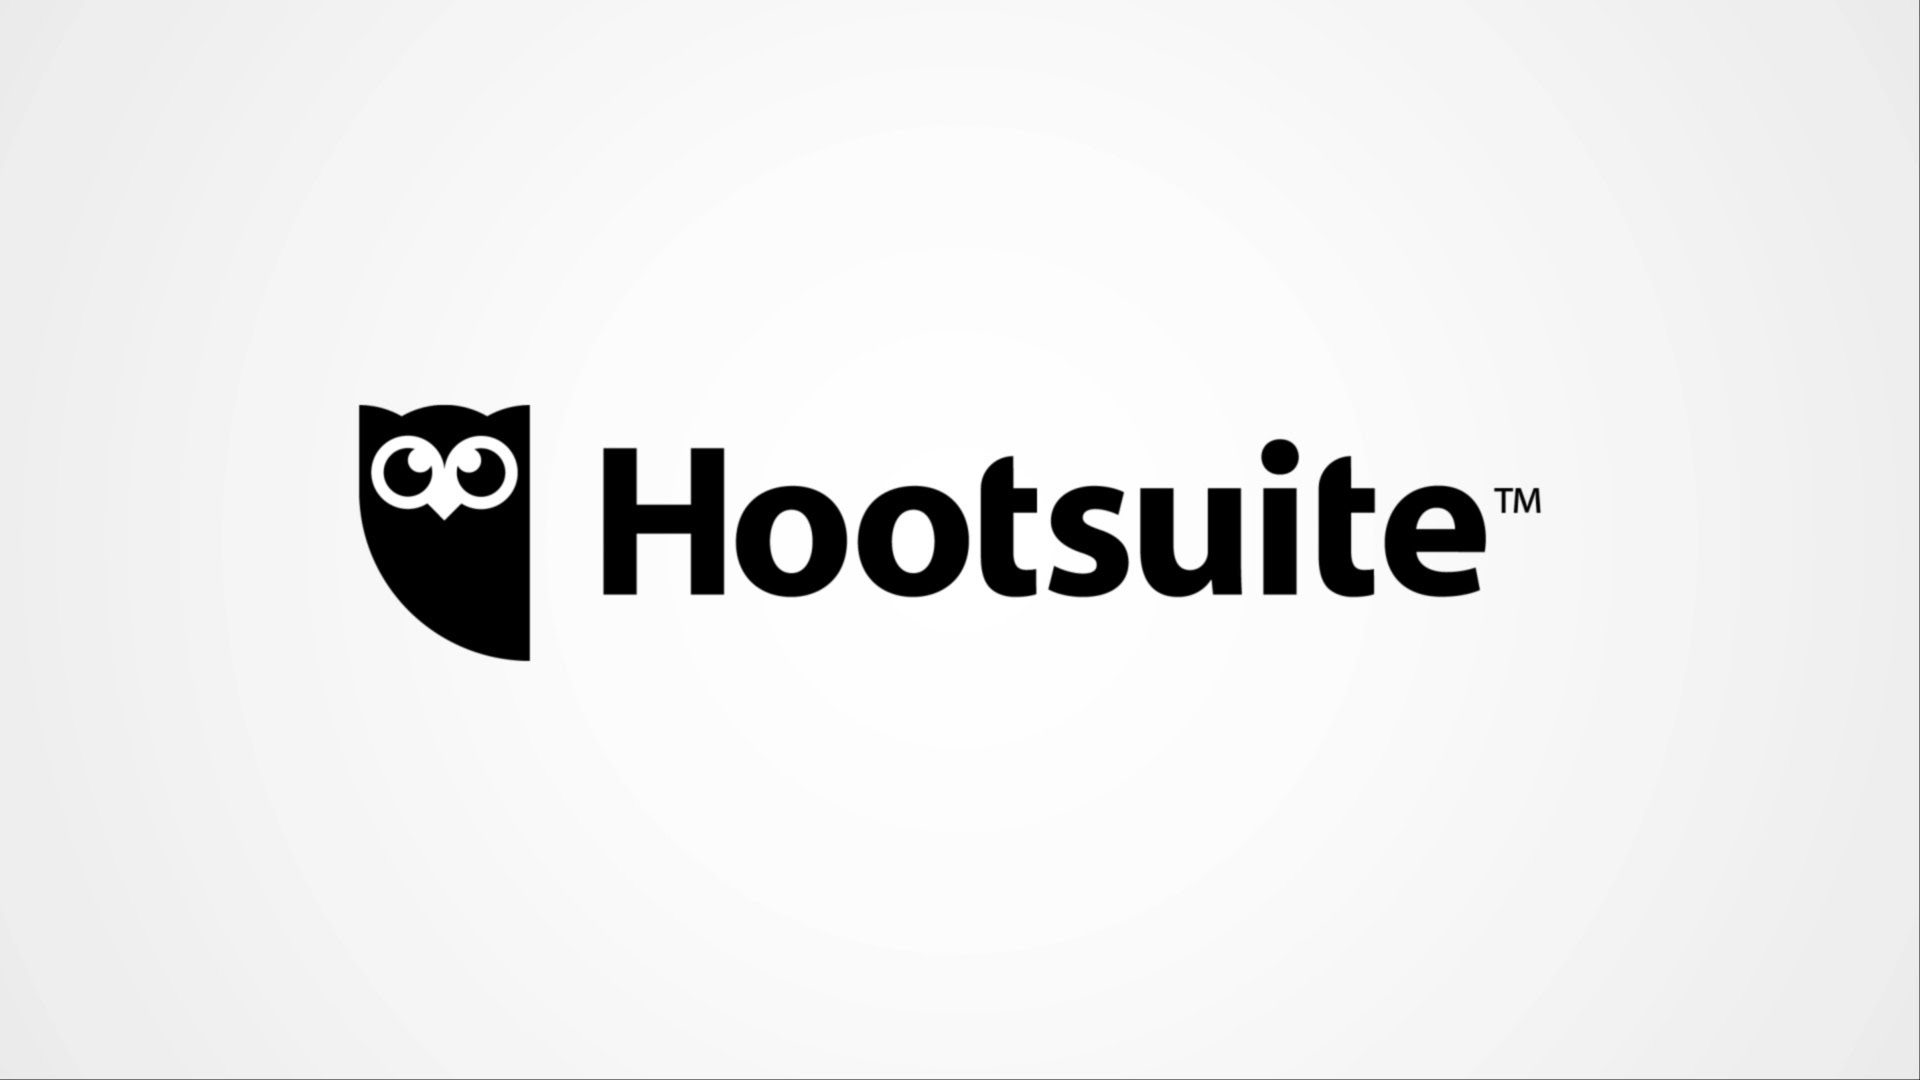 Hootsuite acquires Snapchat analytics solution from marketing firm Naritiv